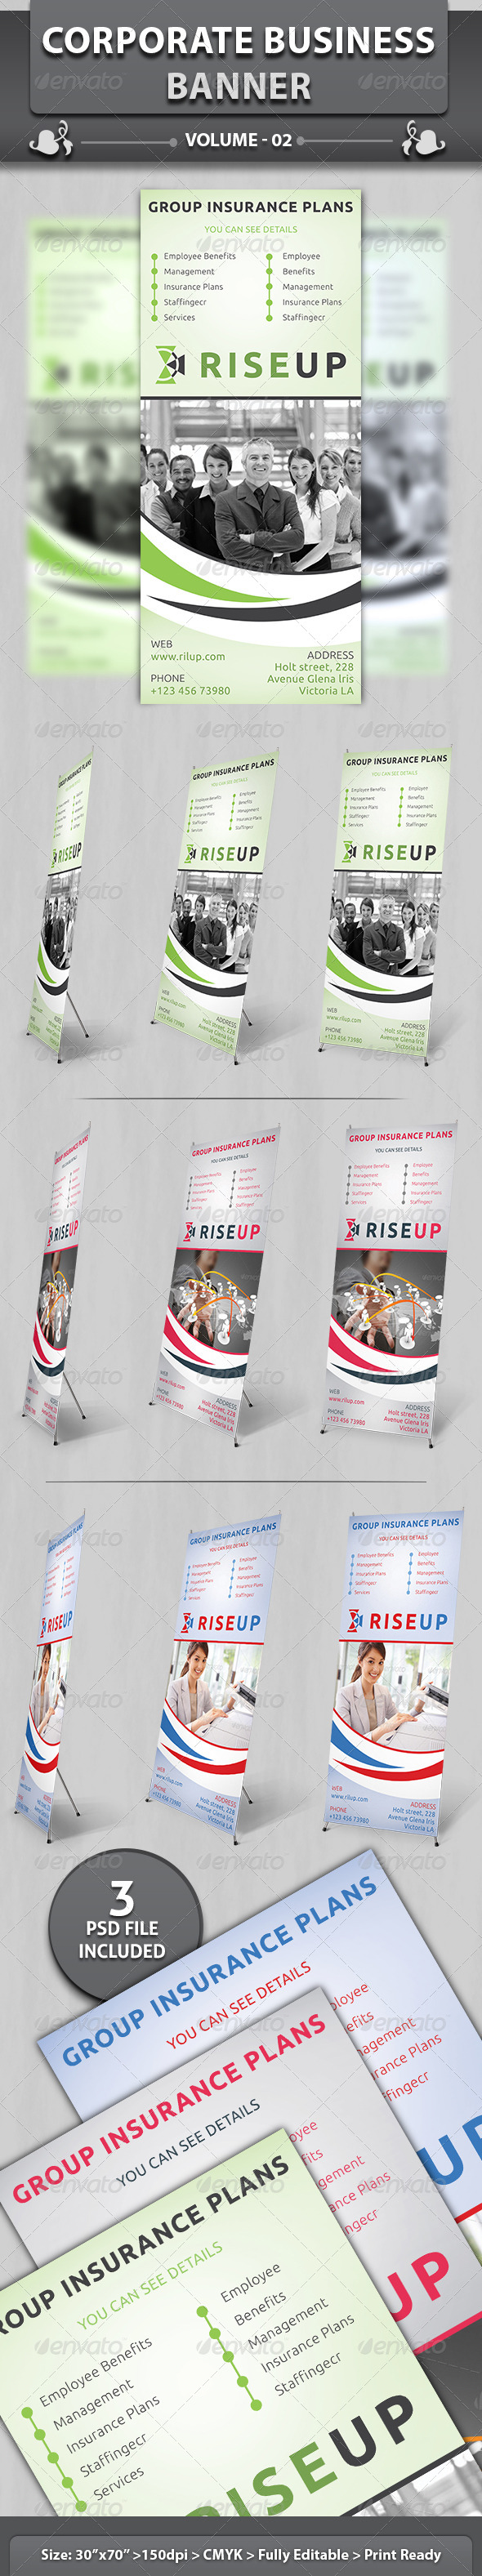 Corporate Business Banner | Volume 1 - Signage Print Templates